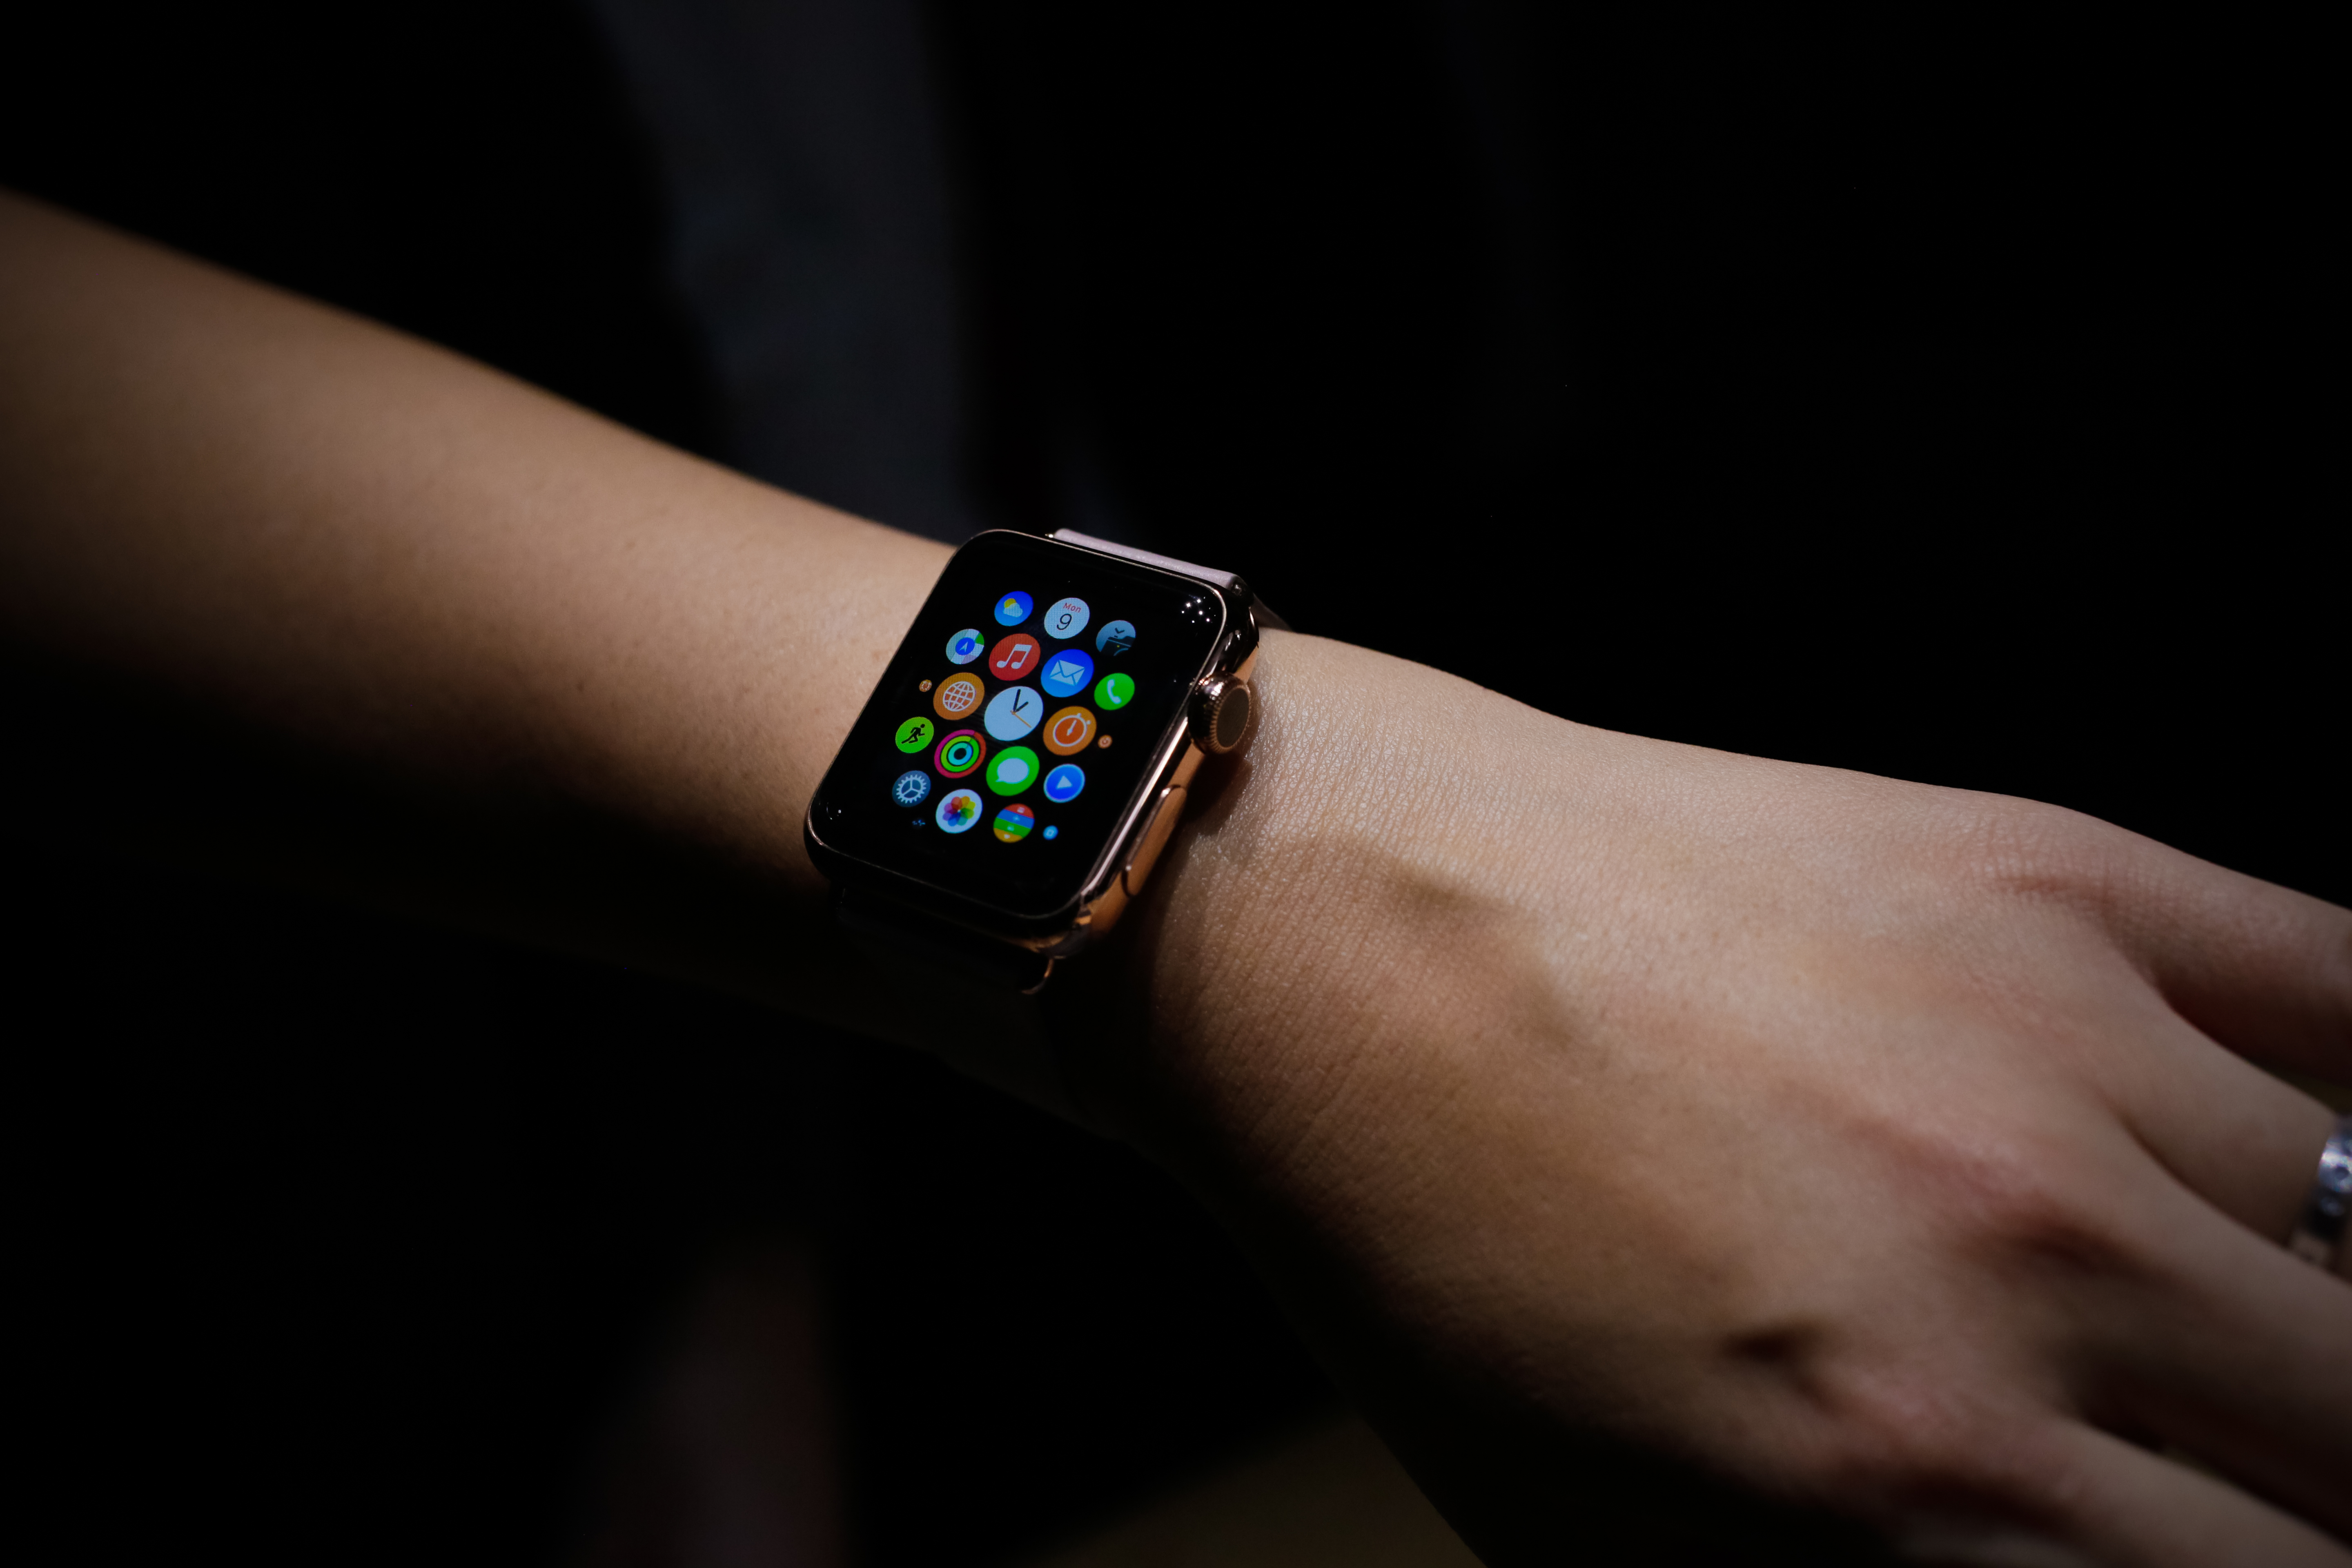 September 2014 - iPhone 6 and Apple Watch